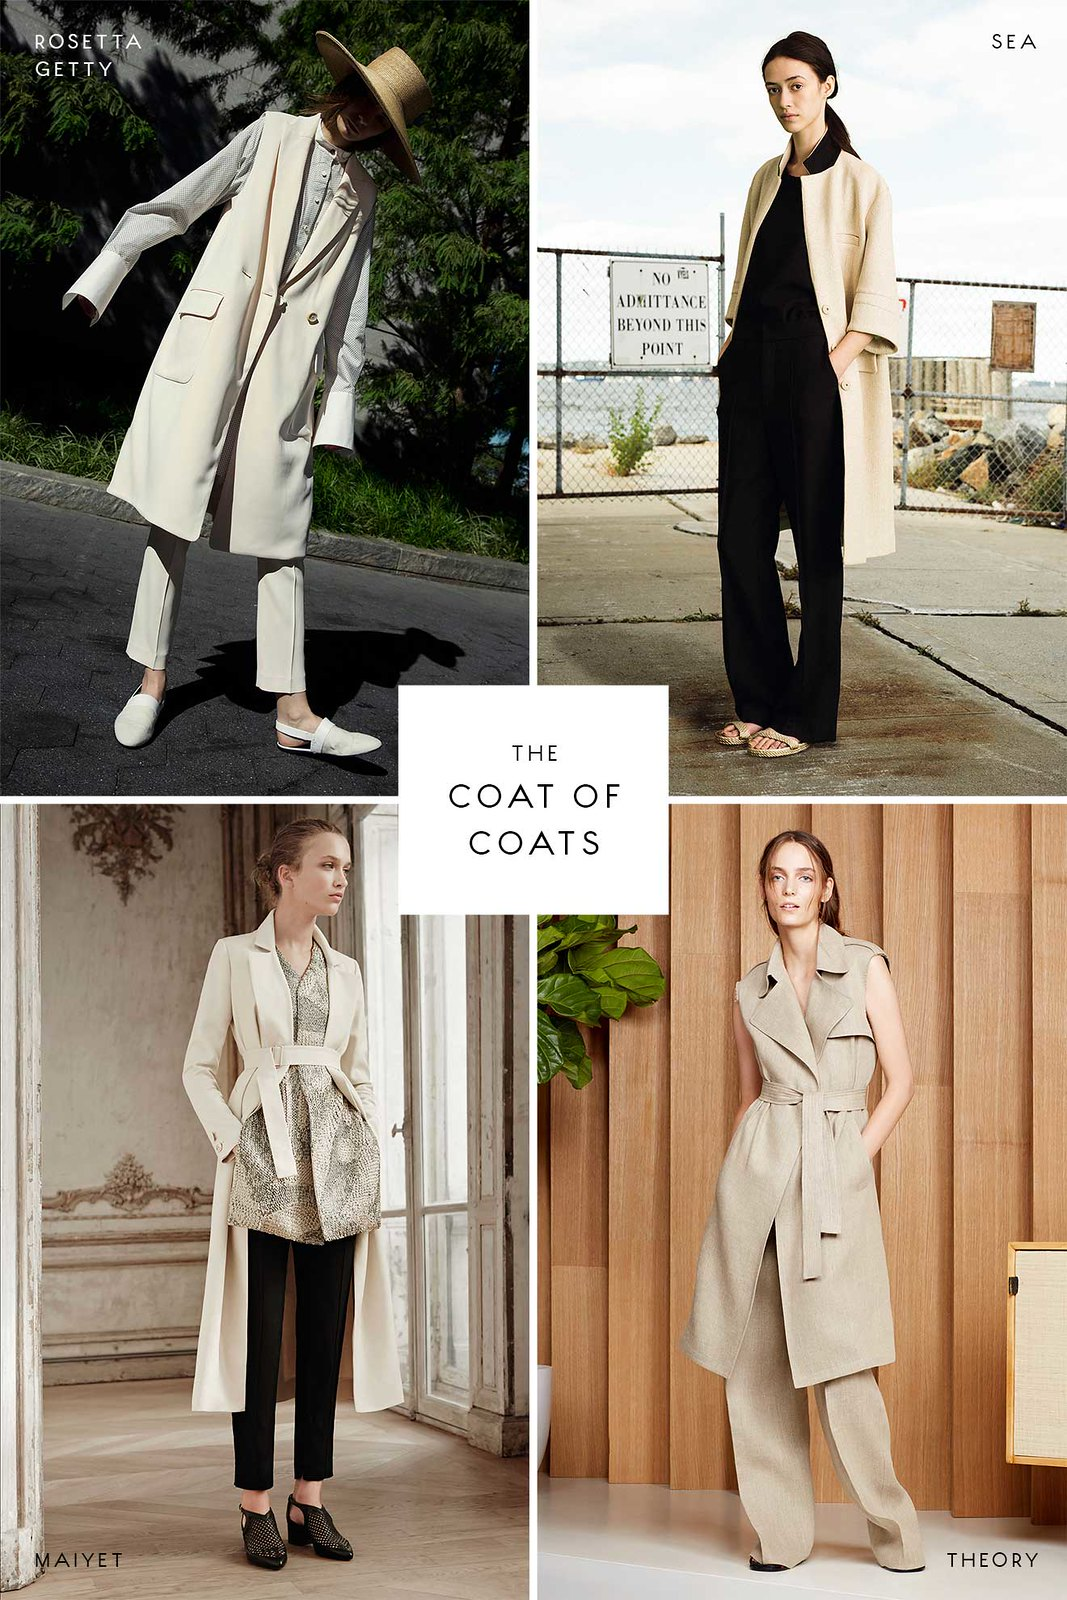 miss-moss-ss15-coat-of-coats